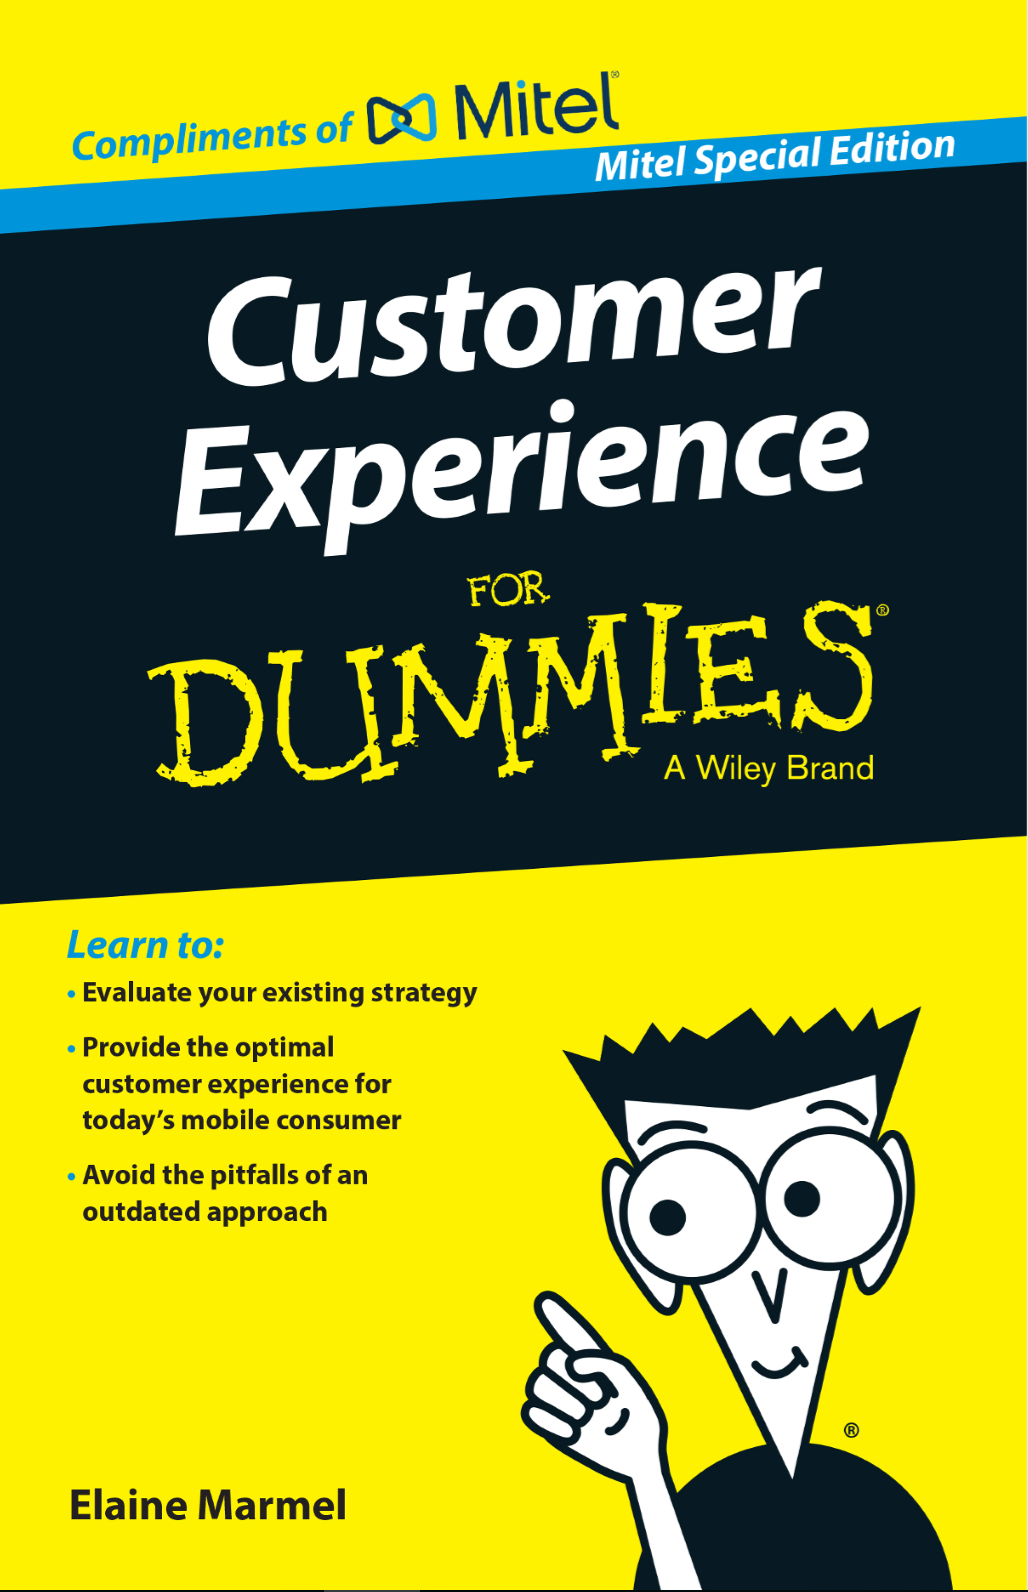 Mitel Customer Experience for Dummies Guide